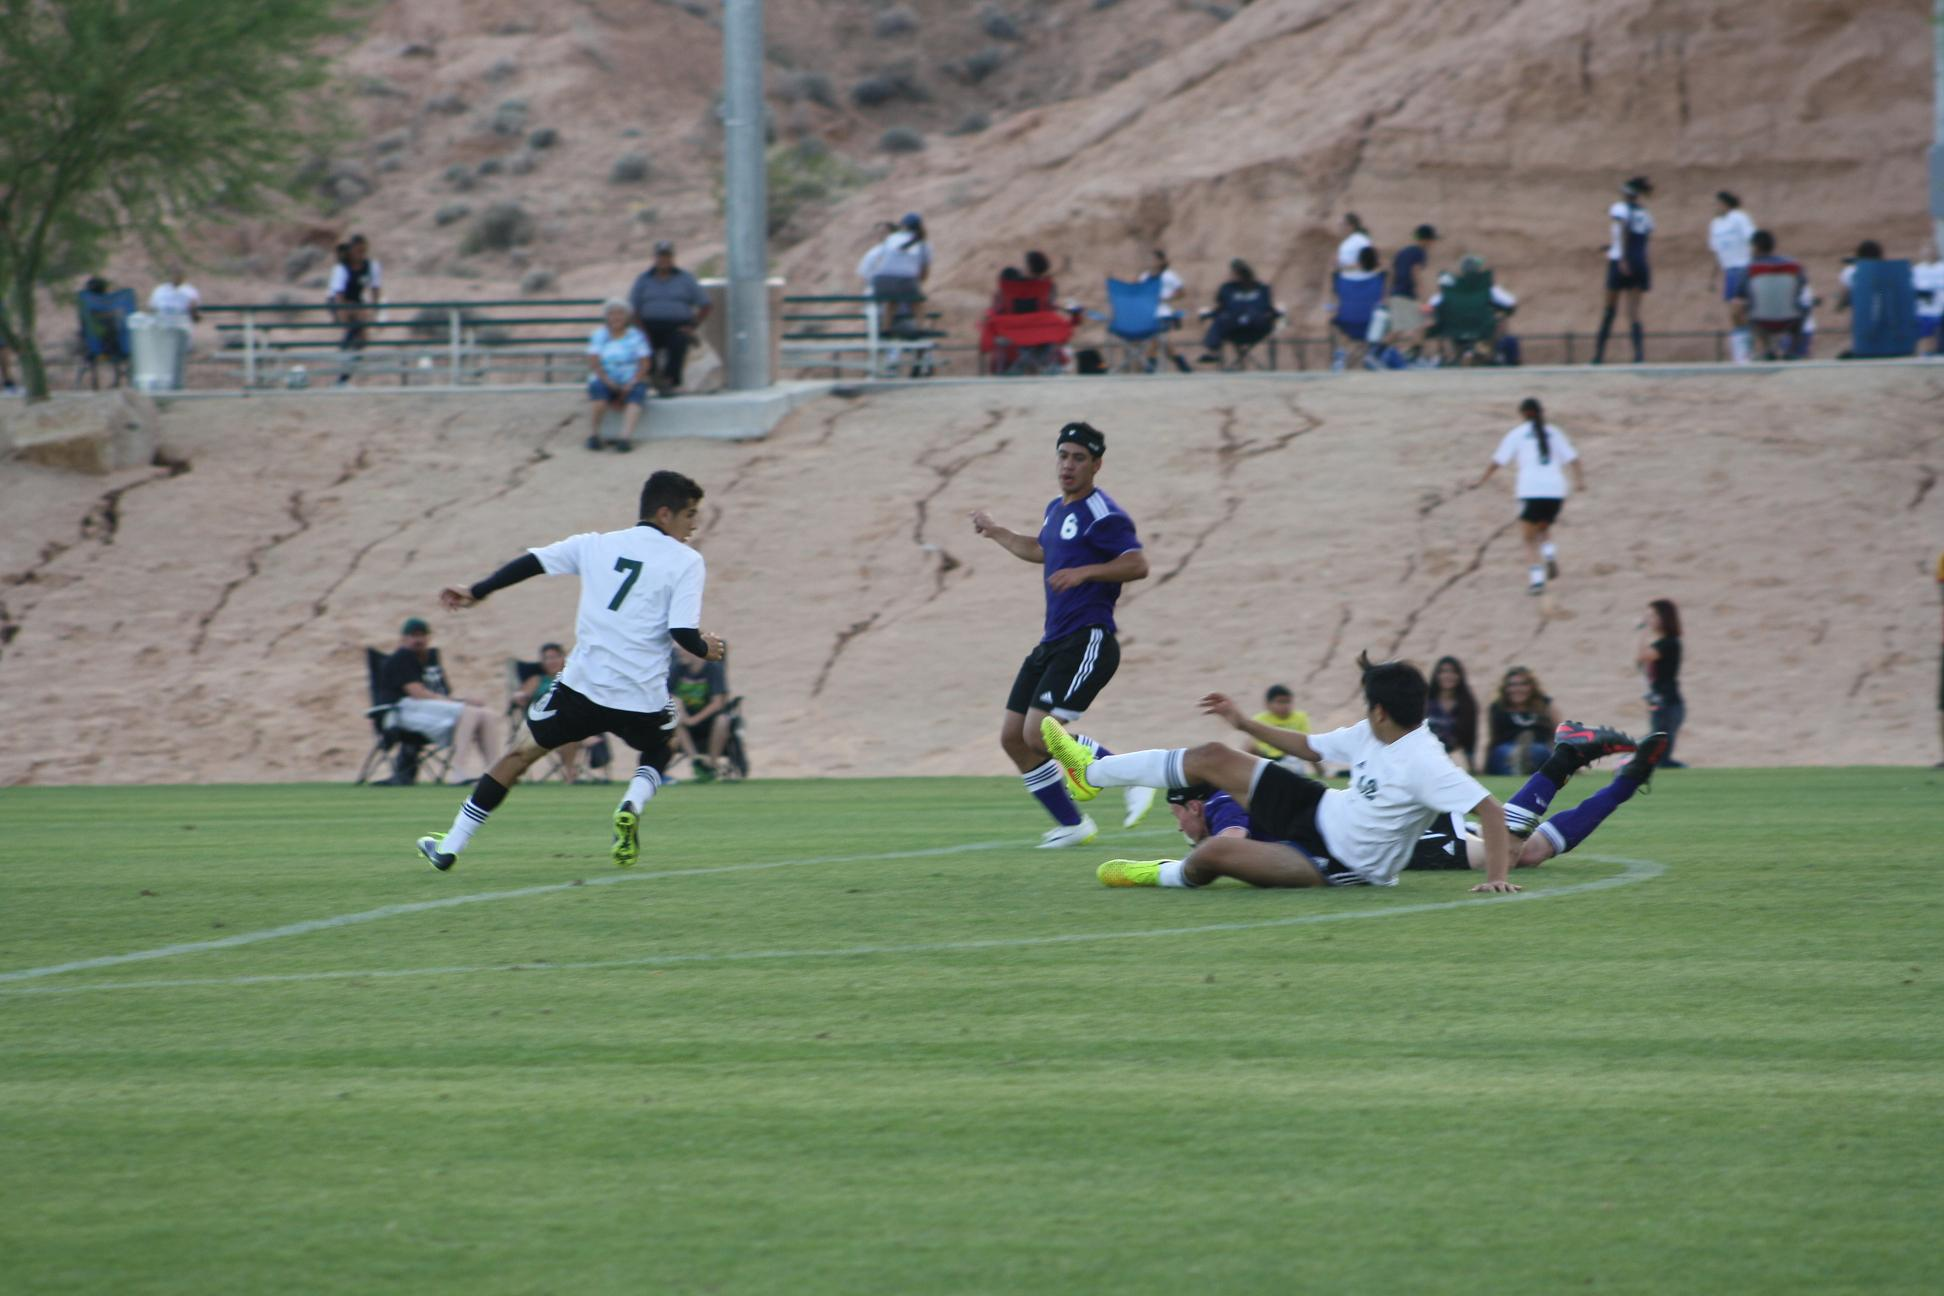 Bulldog boy soccer team places third at Mesquite Cup